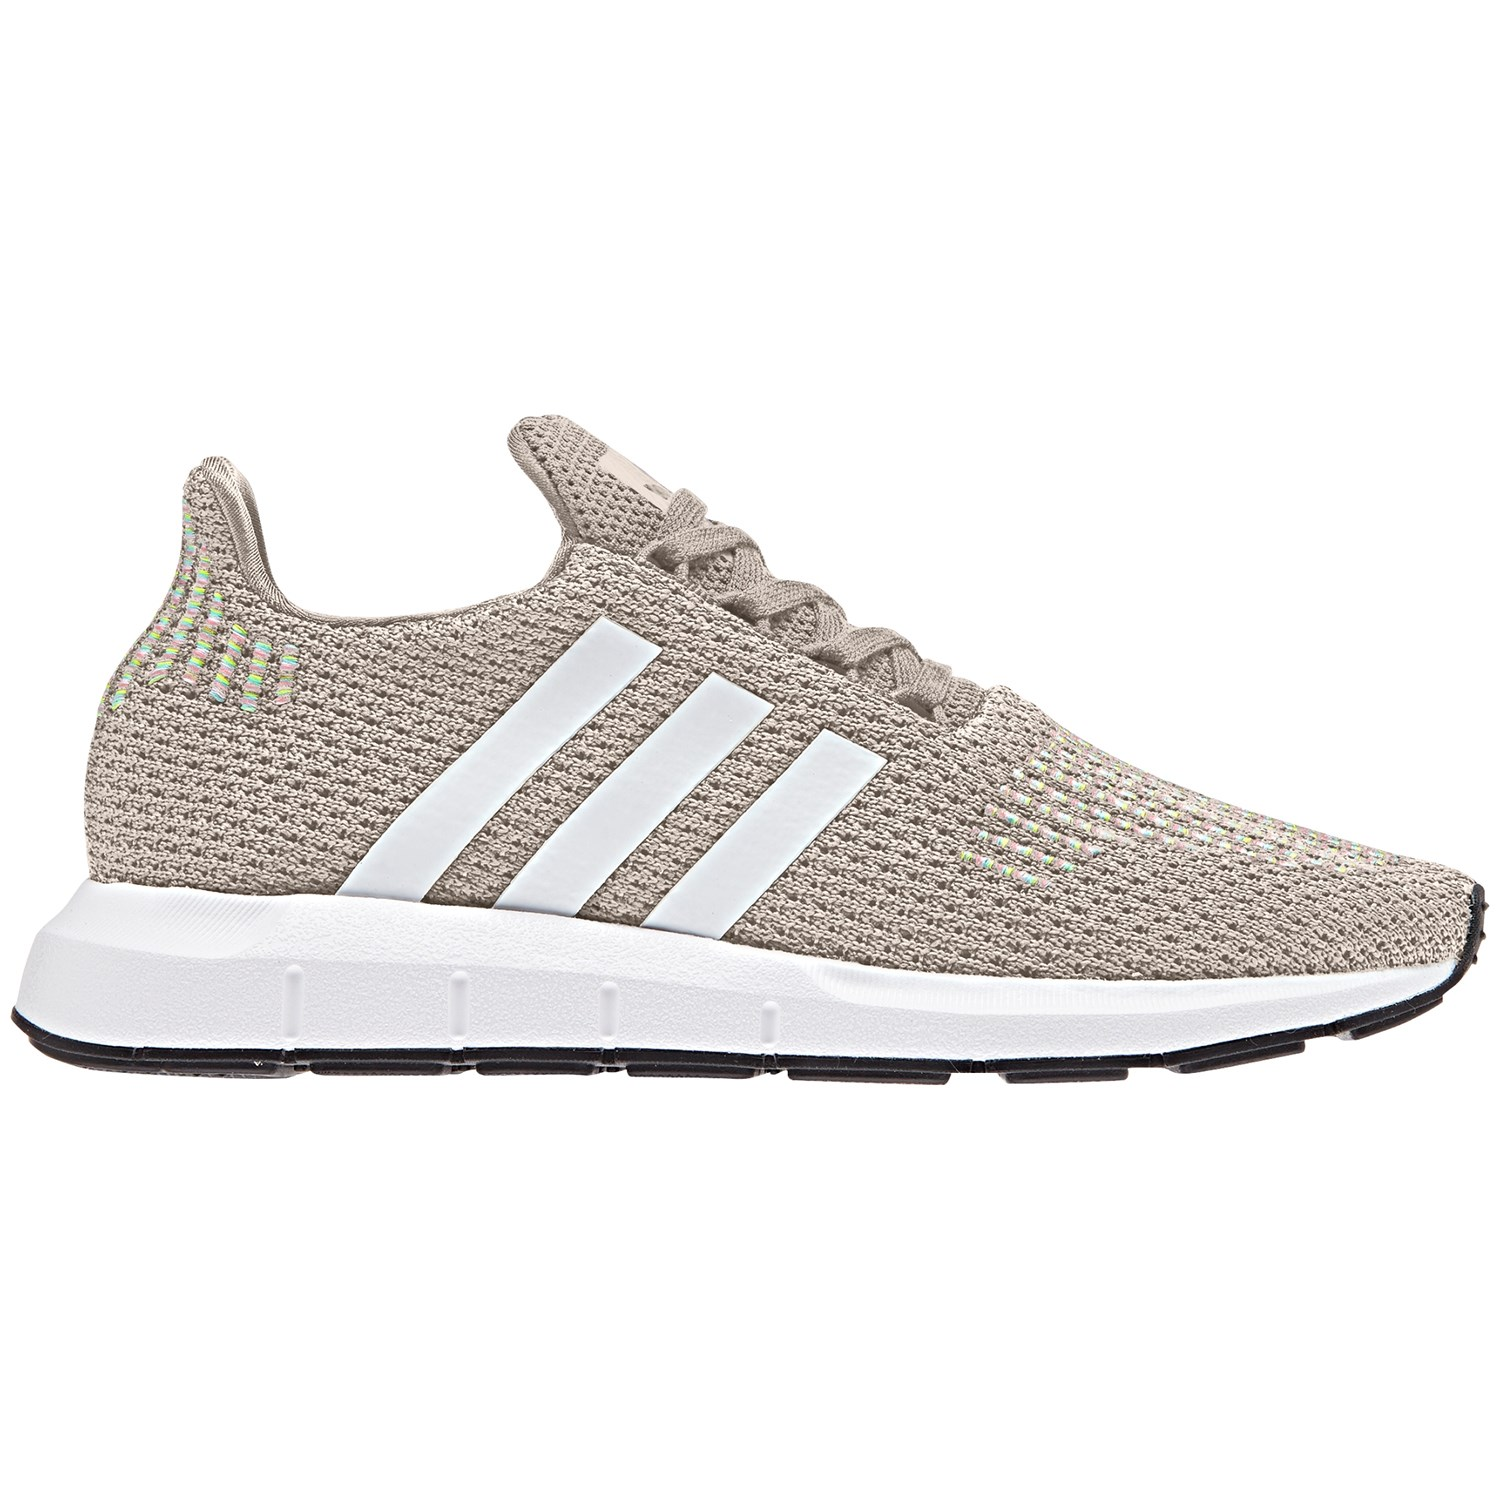 8df3c701d Adidas Swift Run Shoes - Women s